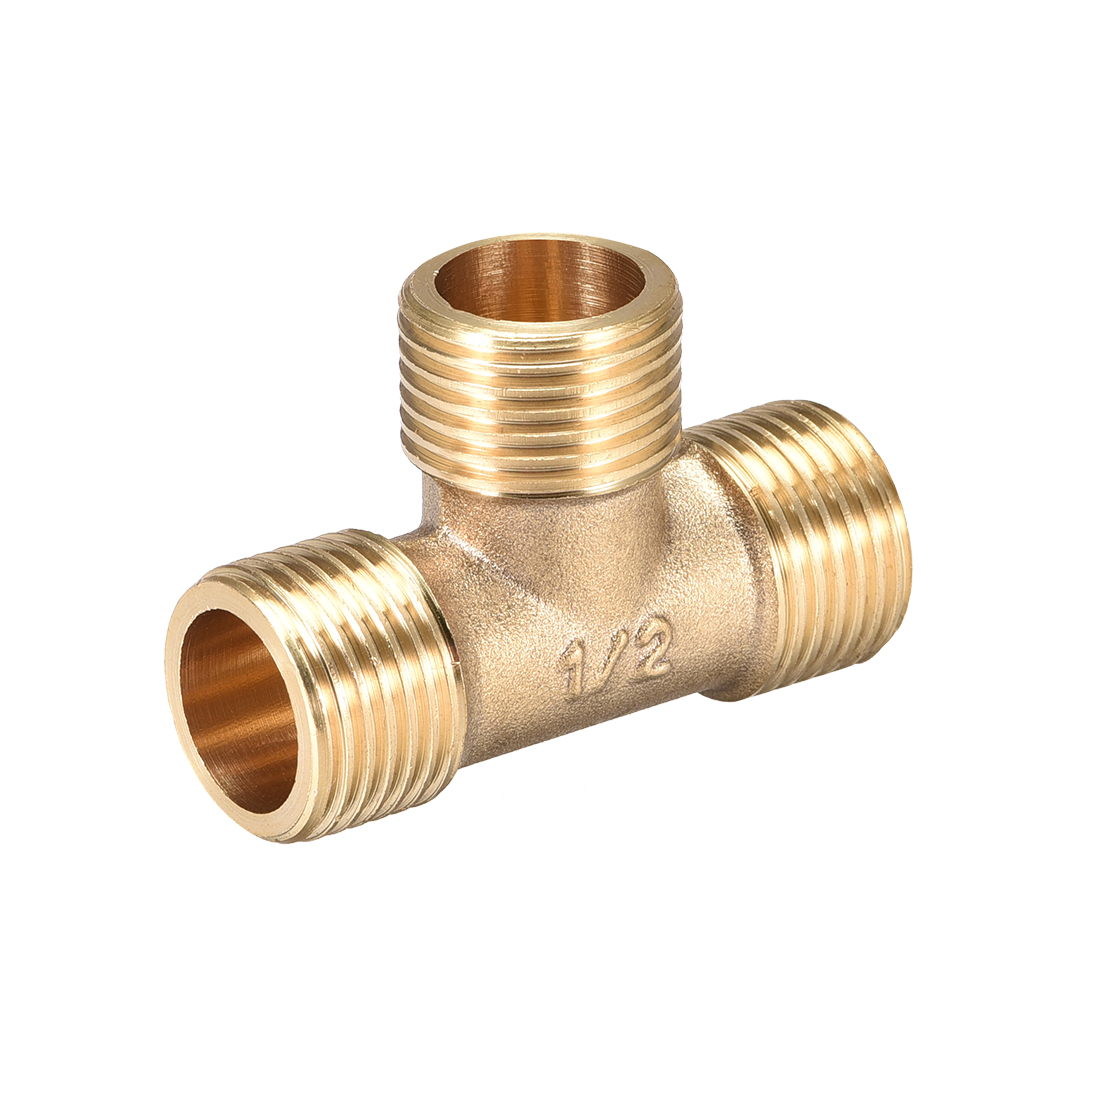 Brass Tee Pipe Fitting G1/2 Male Thread T Shaped Connector Coupler